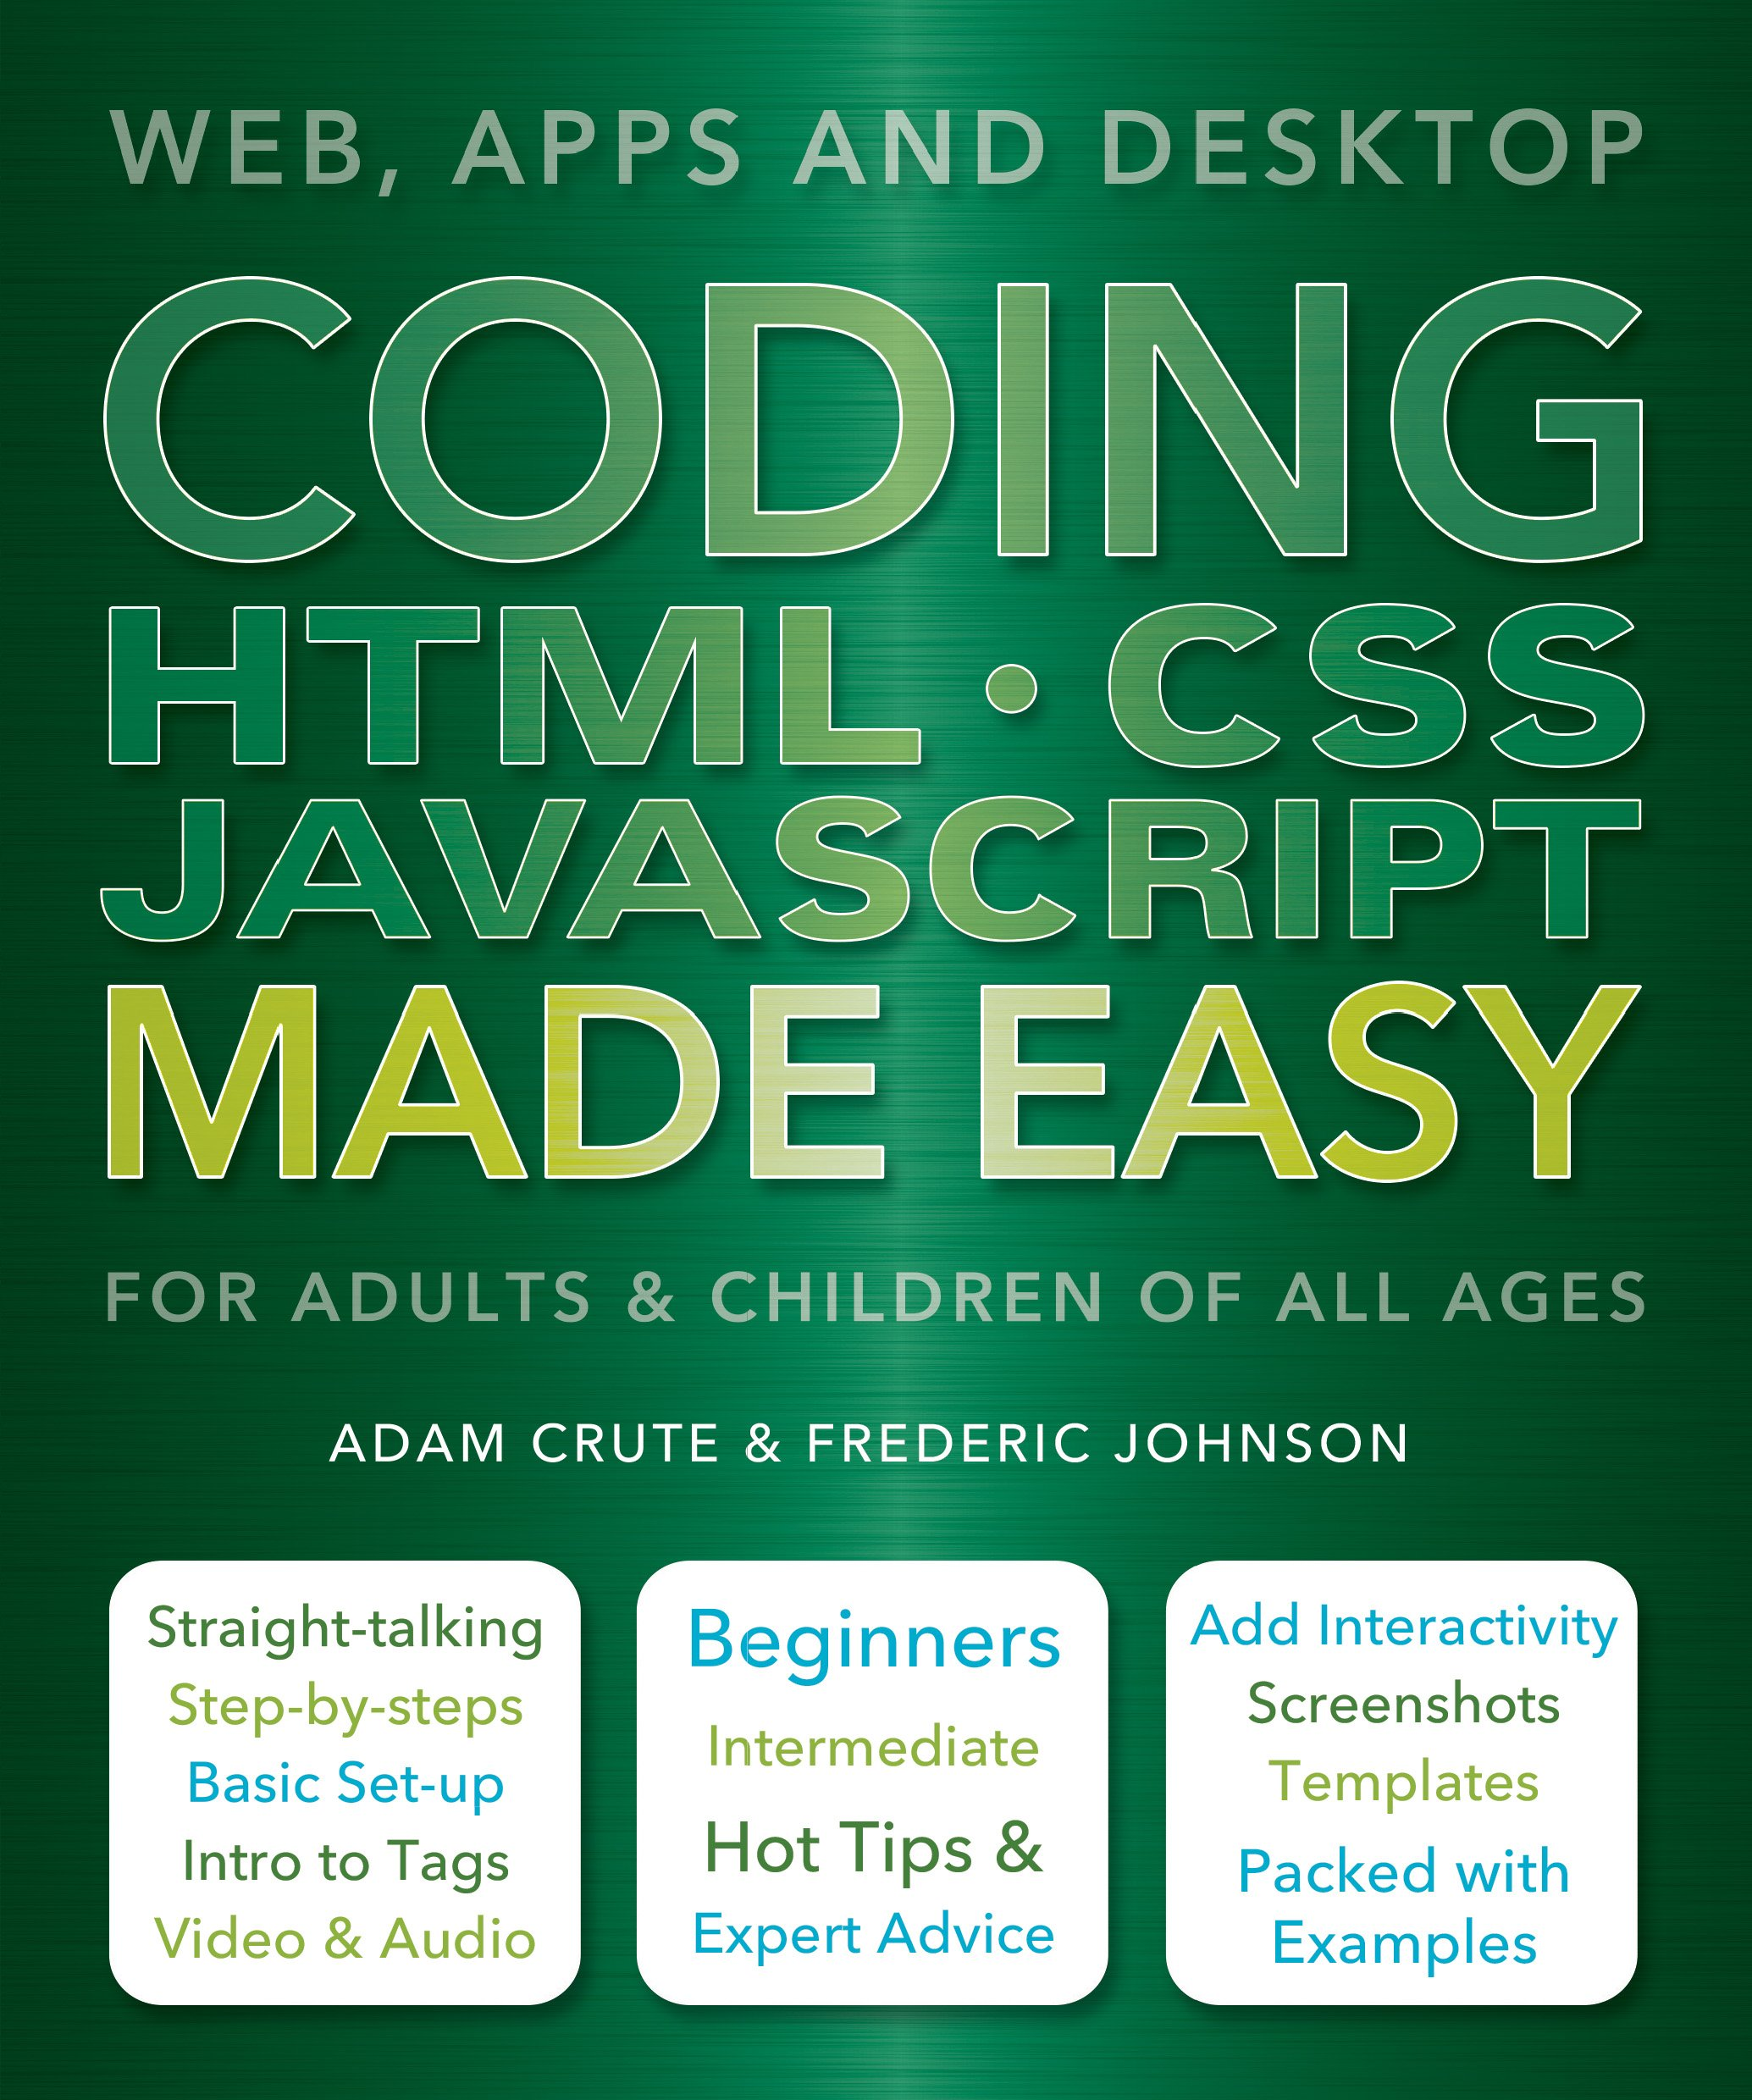 Coding HTML CSS JAVA Made Easy: Web, Apps and Desktop: Adam